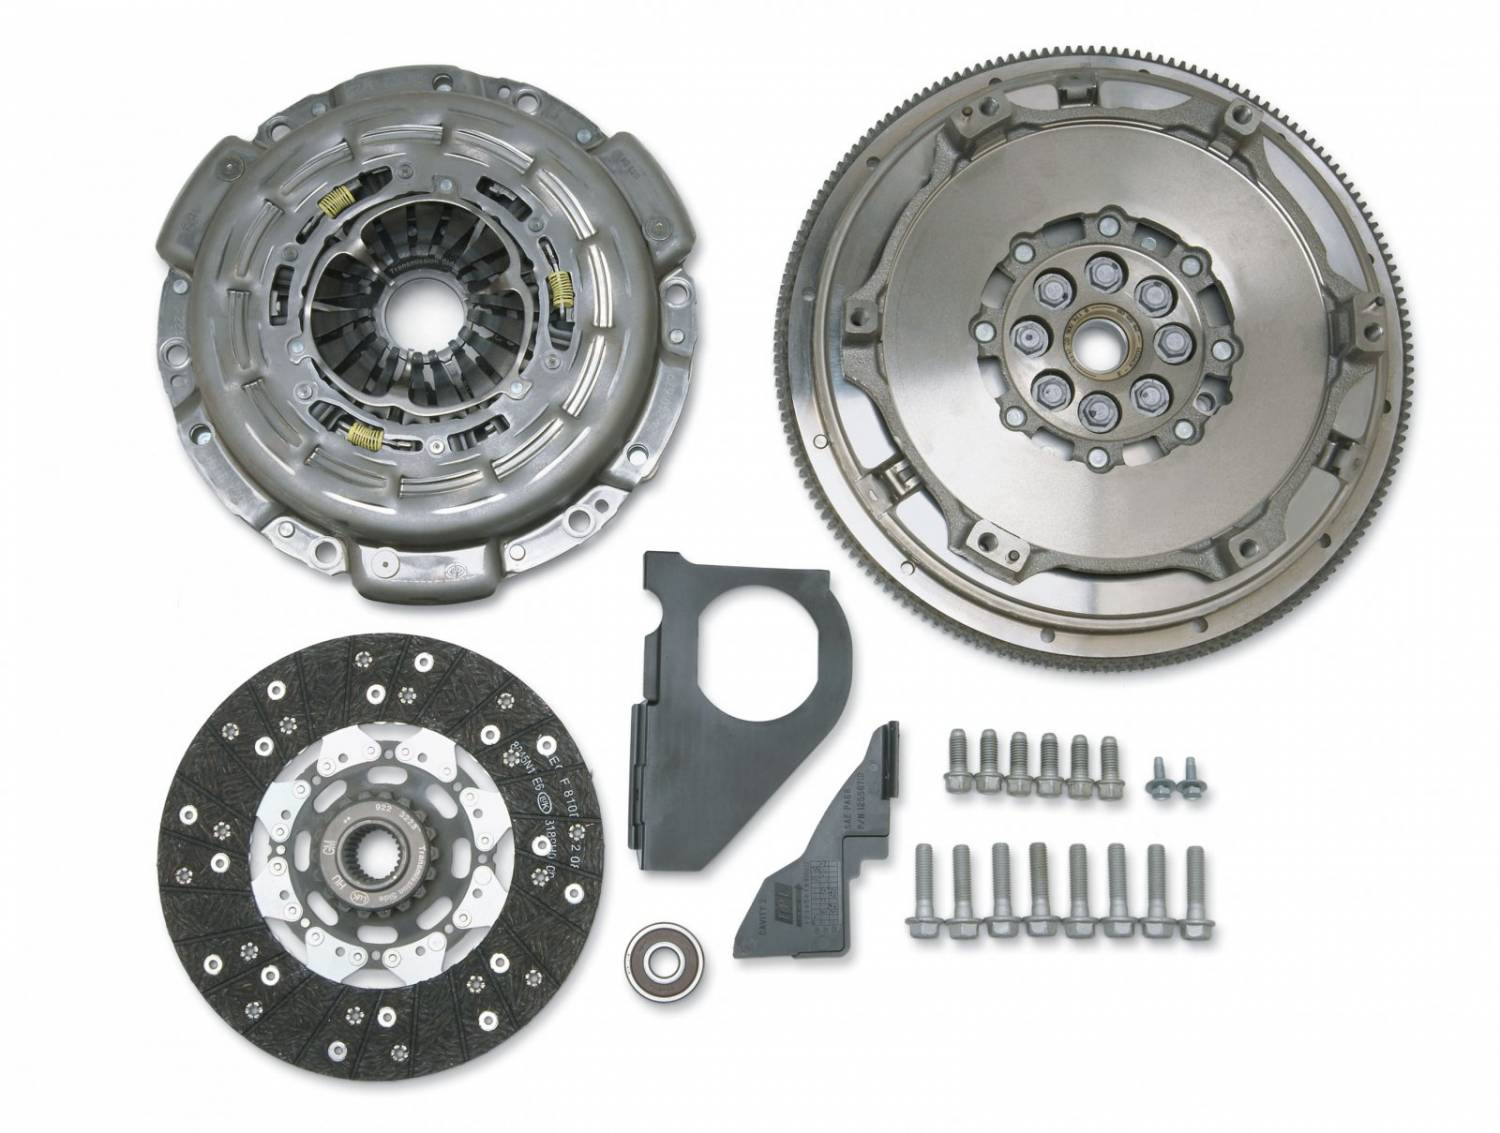 24264047 - Tr6060 Cts-V Six-Speed Manual Transmission GM